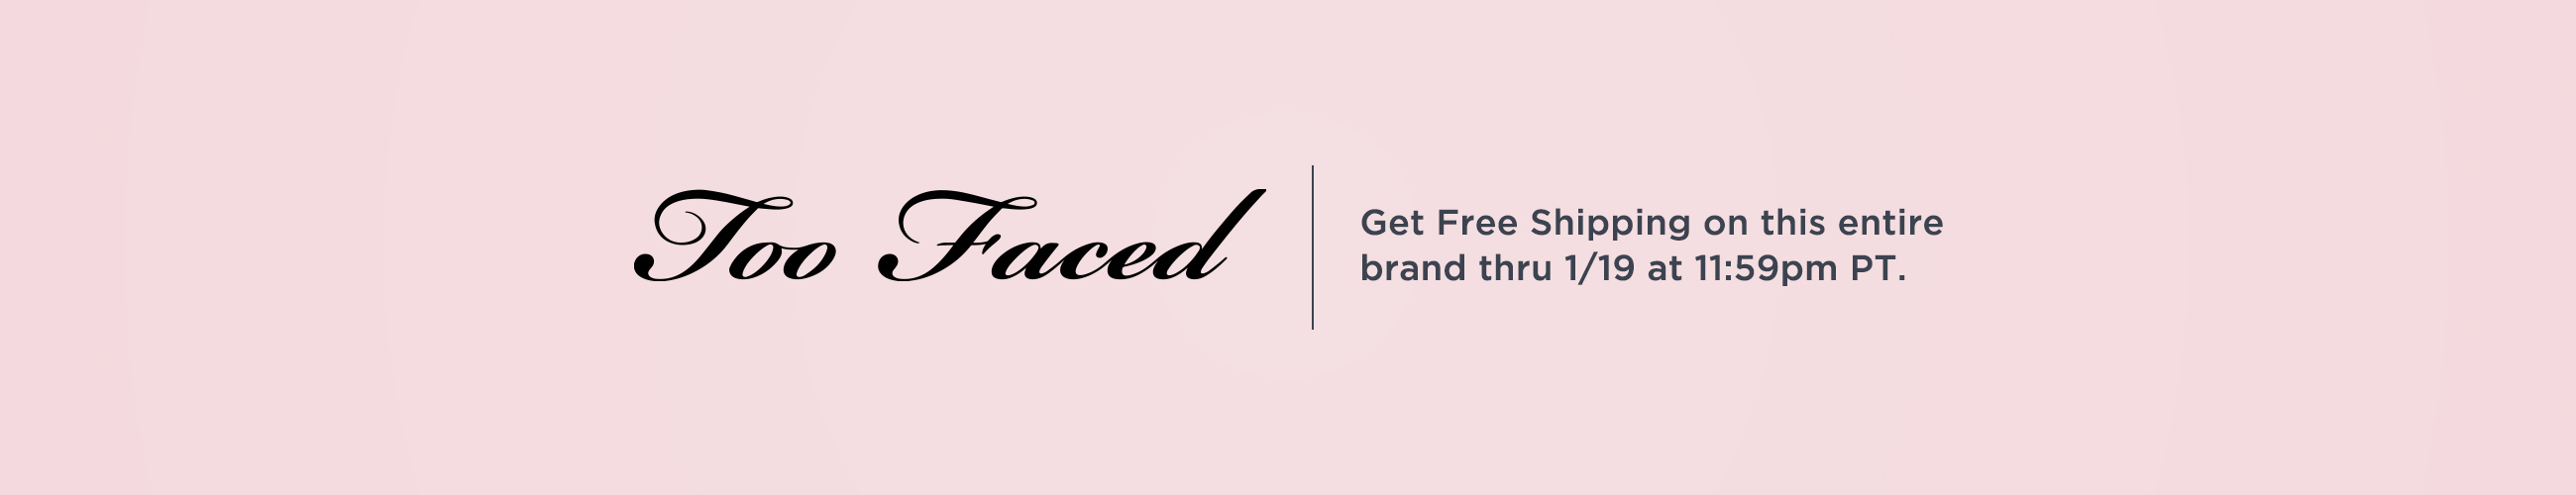 Too Faced. Get Free Shipping on this entire brand thru 1/19 at 11:59pm PT.